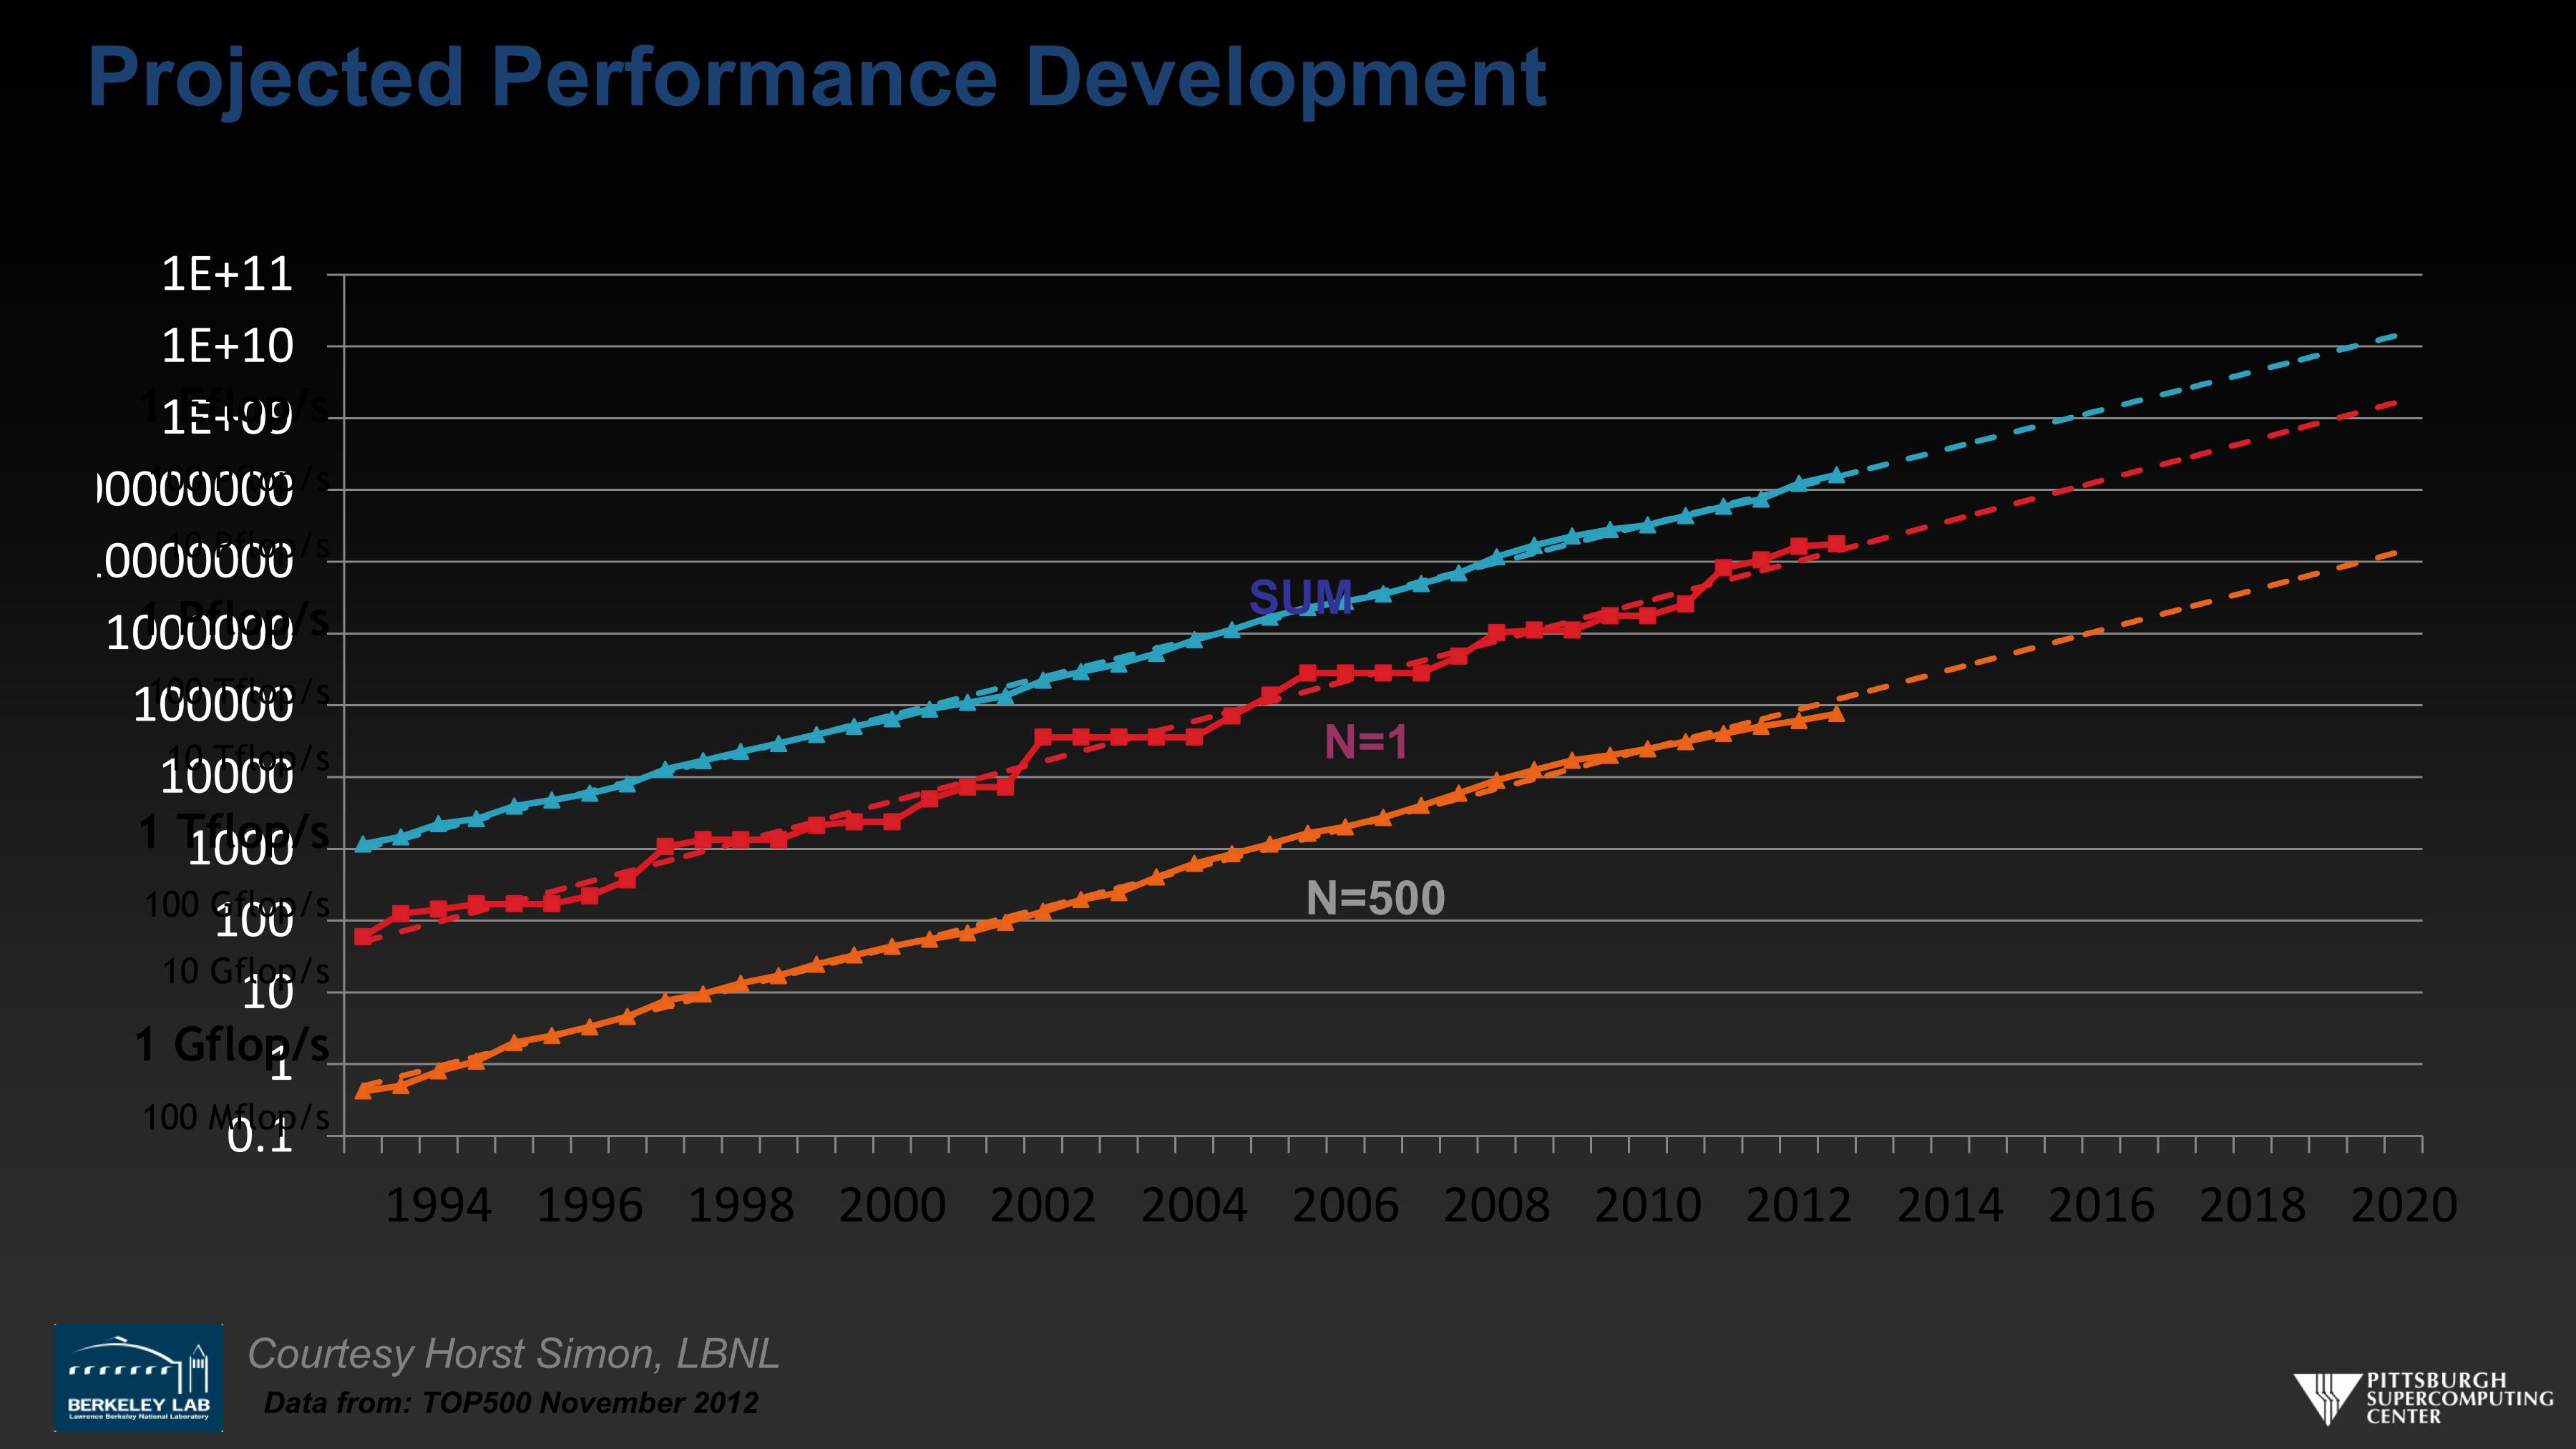 Projected Performance Development